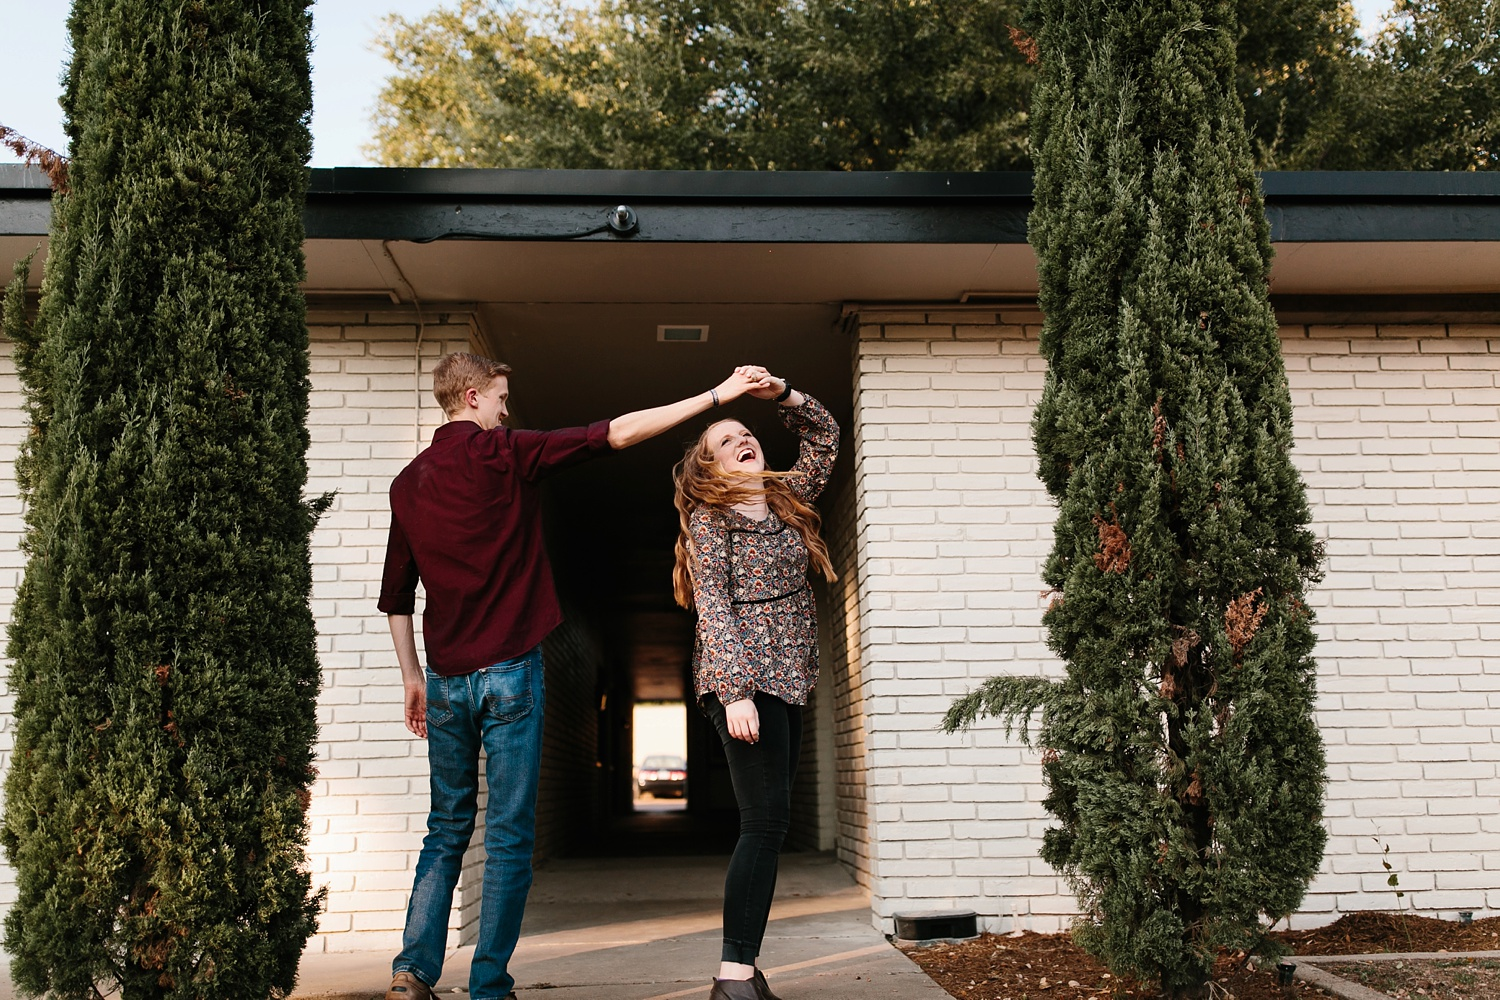 Kayla + Alex _ a joyful and loving engagement shoot in Waco, Texas by North Texas Wedding Photographer Rachel Meagan Photography _27